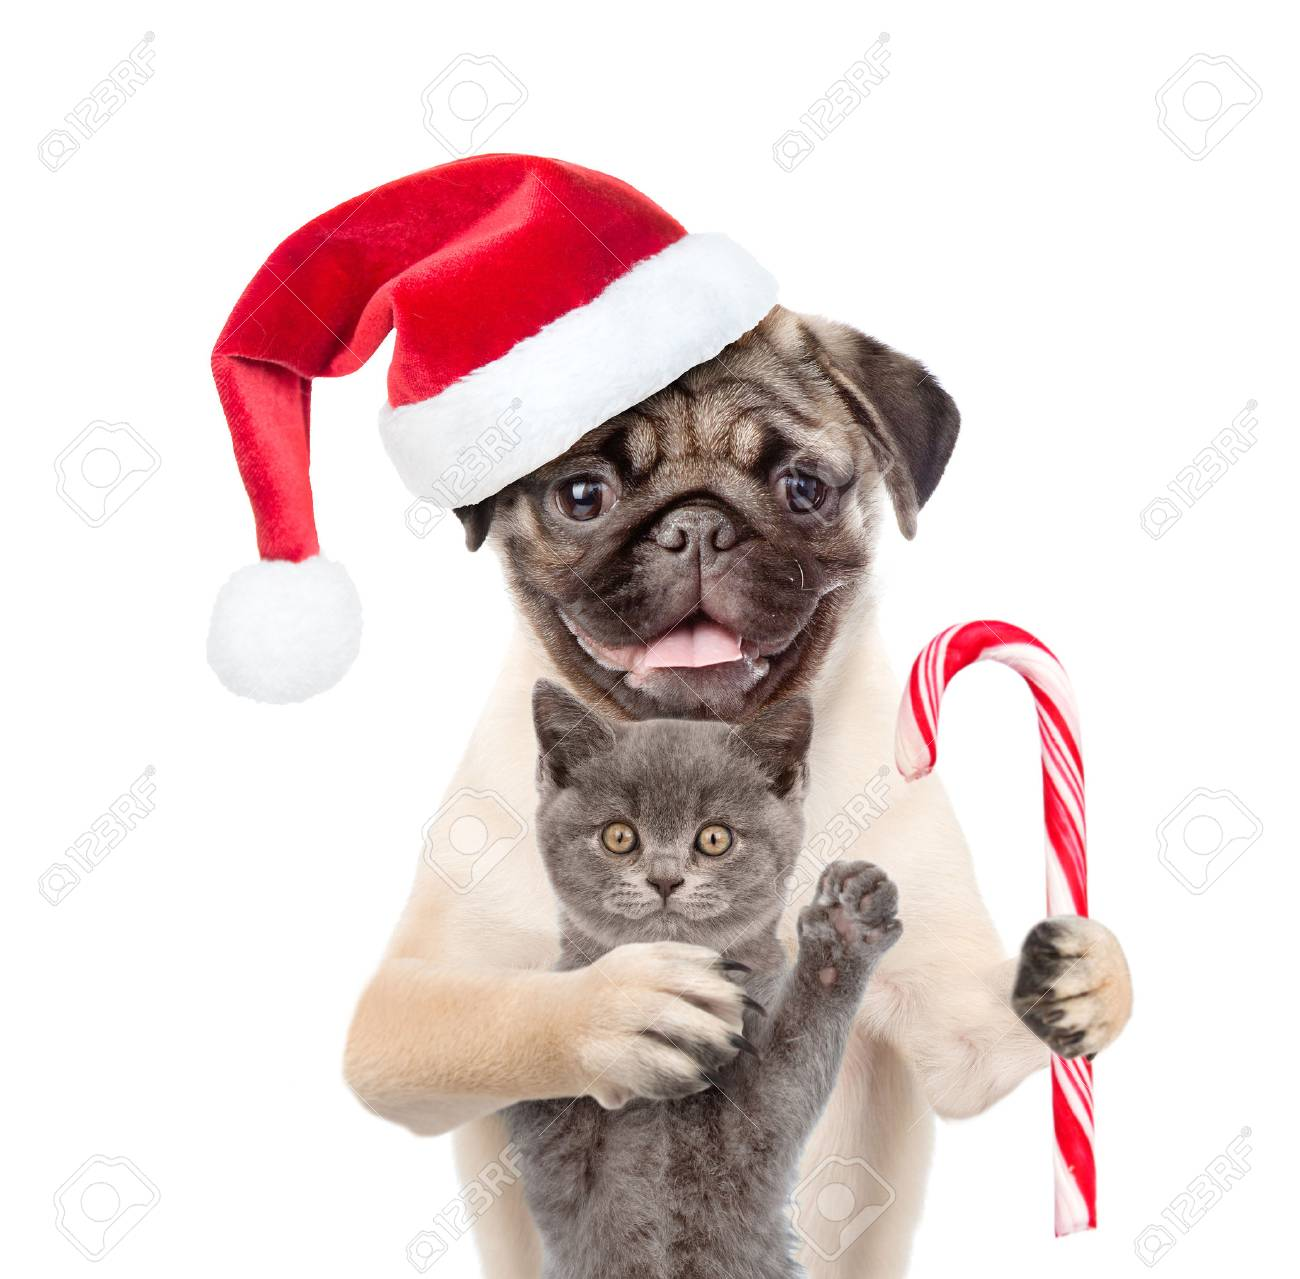 Pug Puppy With Christmas Candy Cane Embracing Scottish Cat In